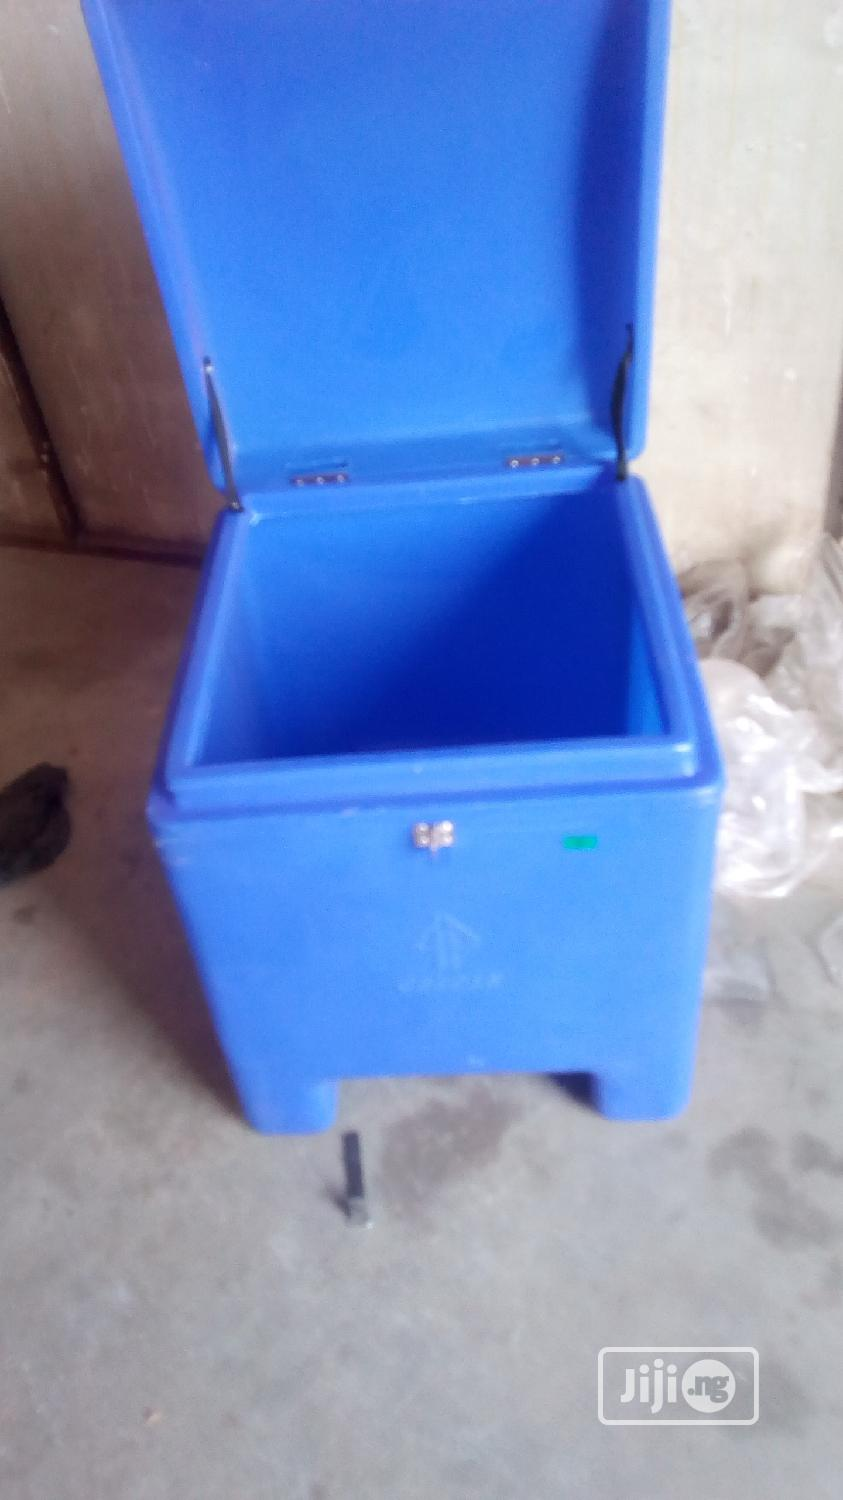 Geepee Courier Service Boxes